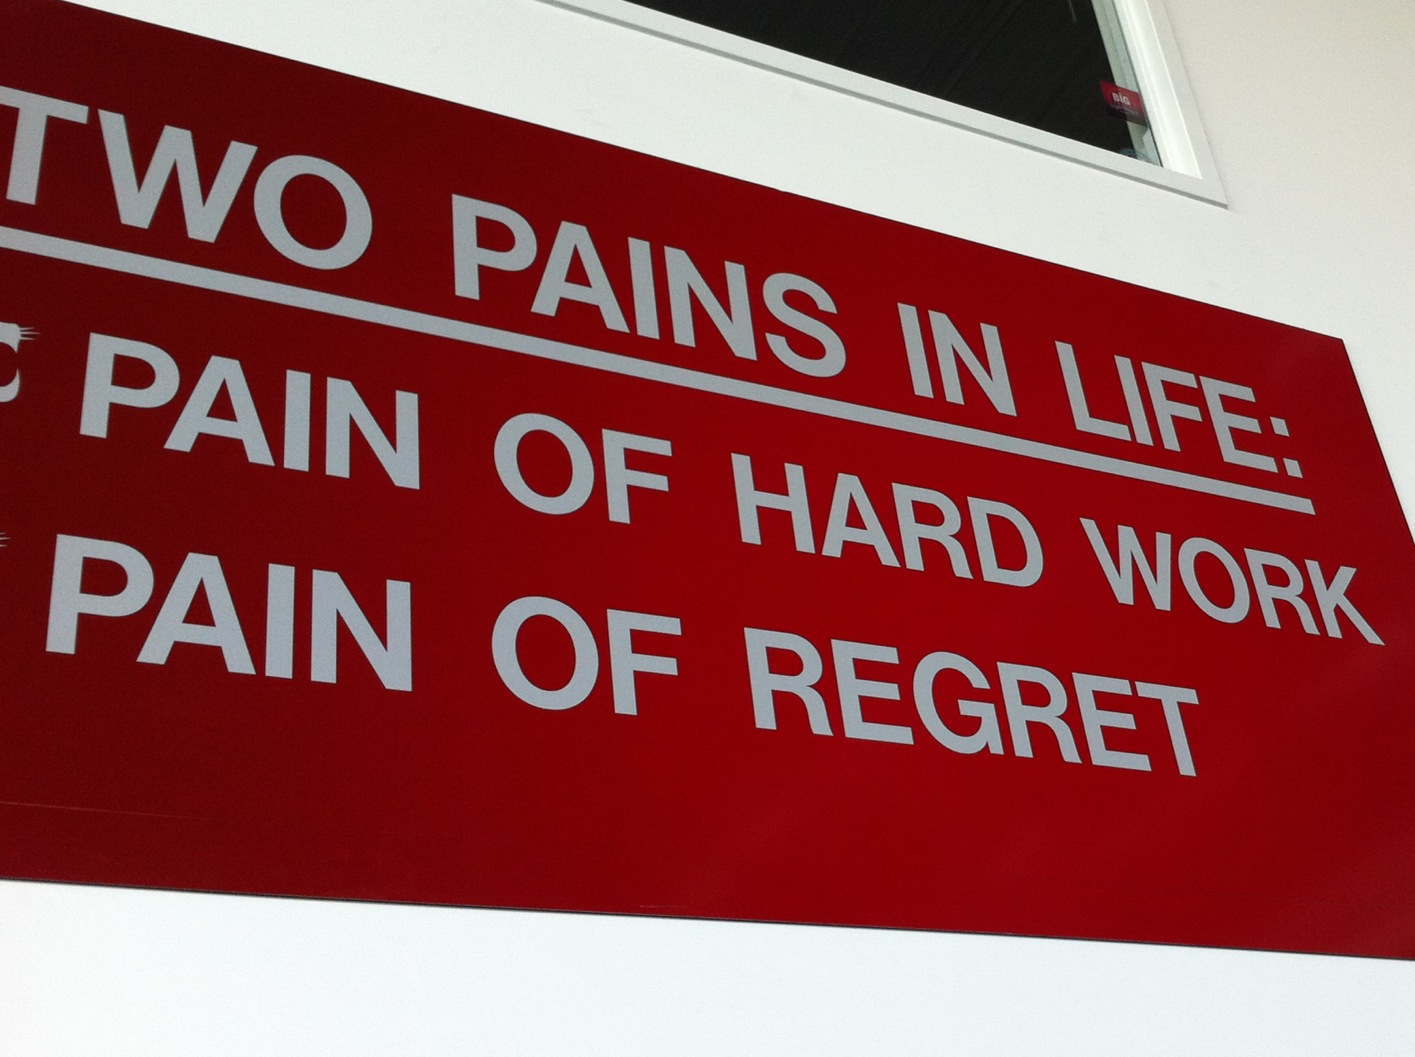 Two Pains In Life Pain Of Hard Work And Pain Of Regret